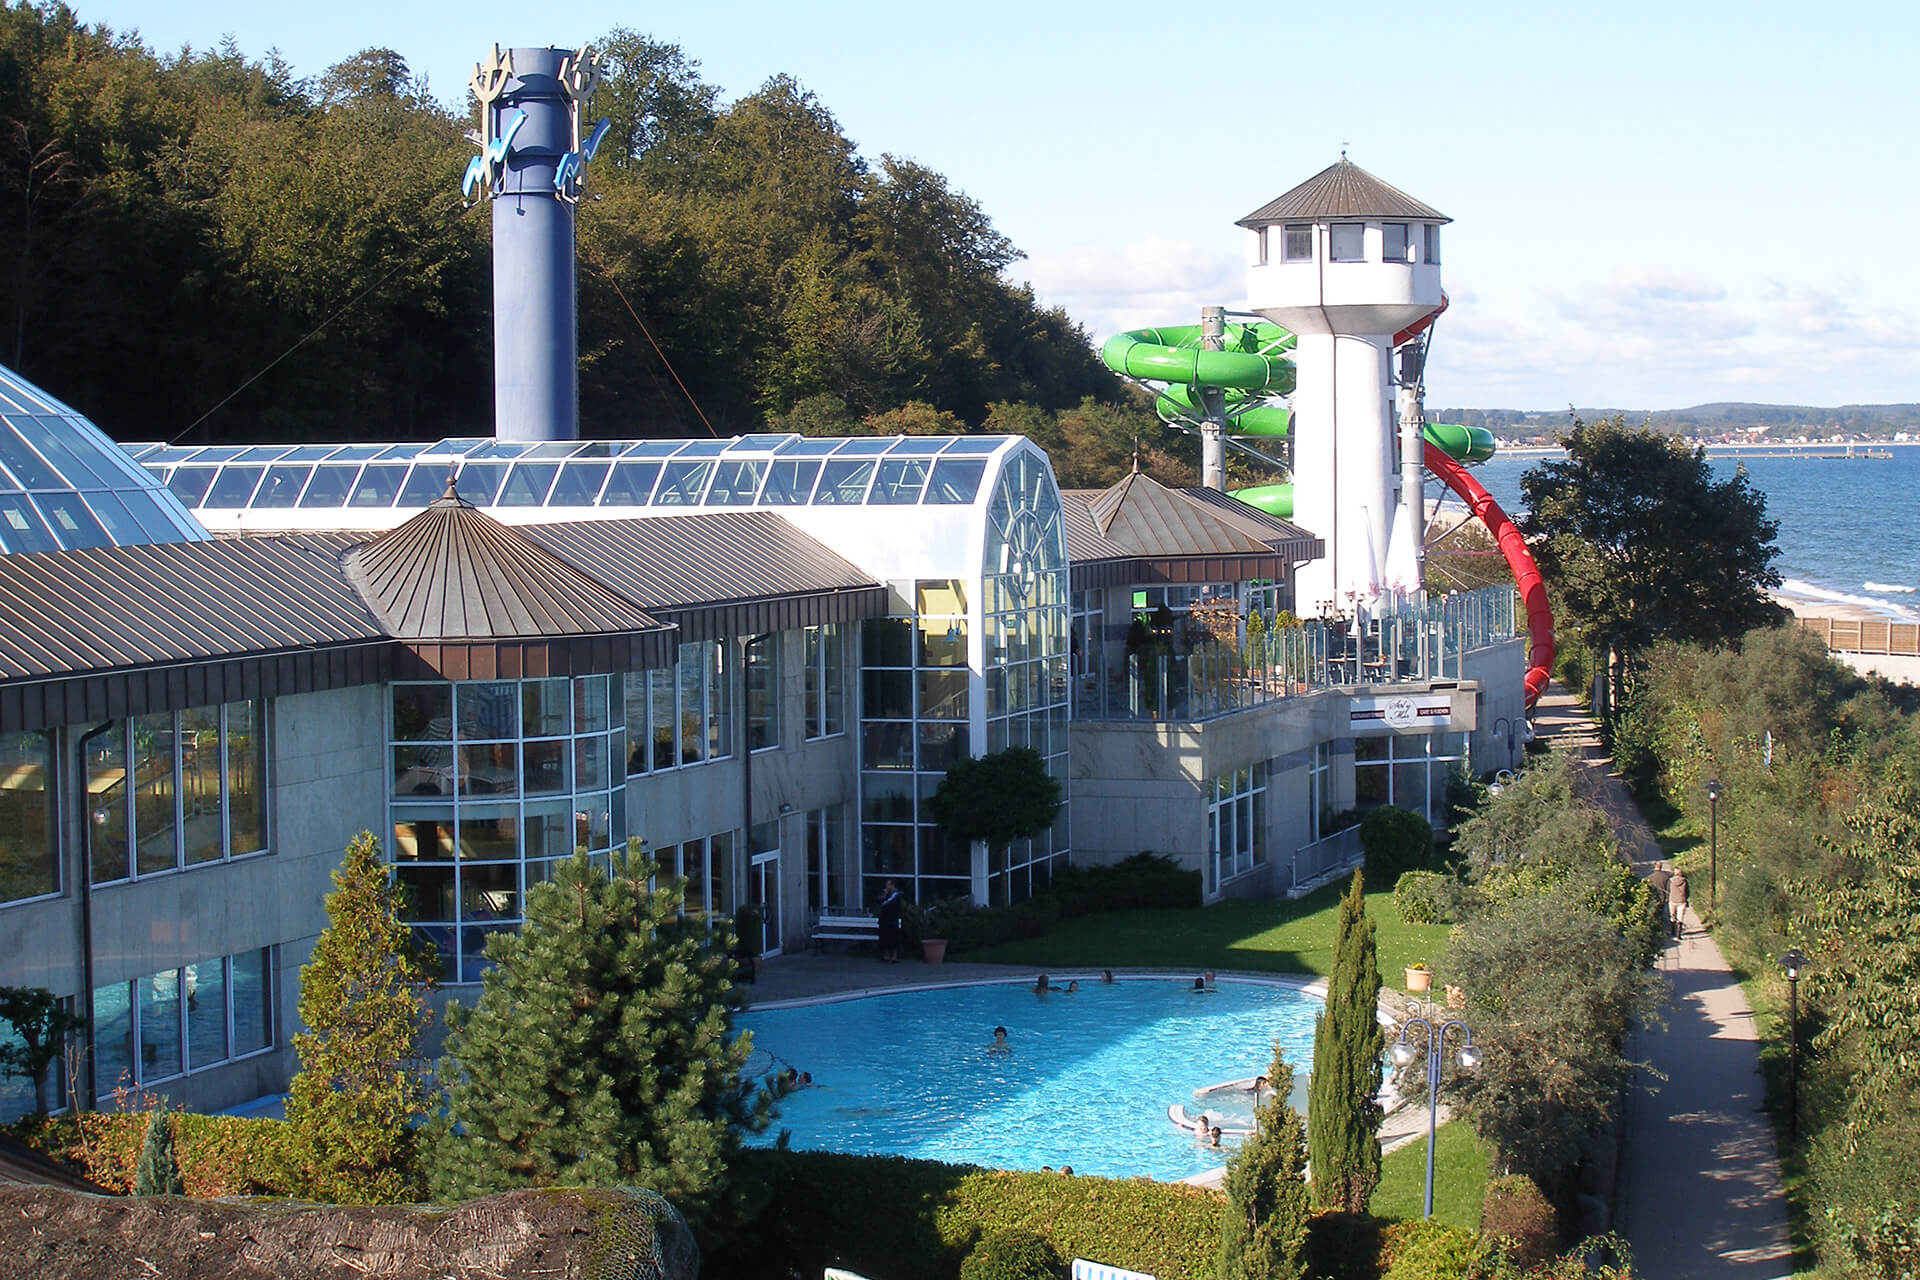 Ostsee Therme Erlebniswelt in Lübeck